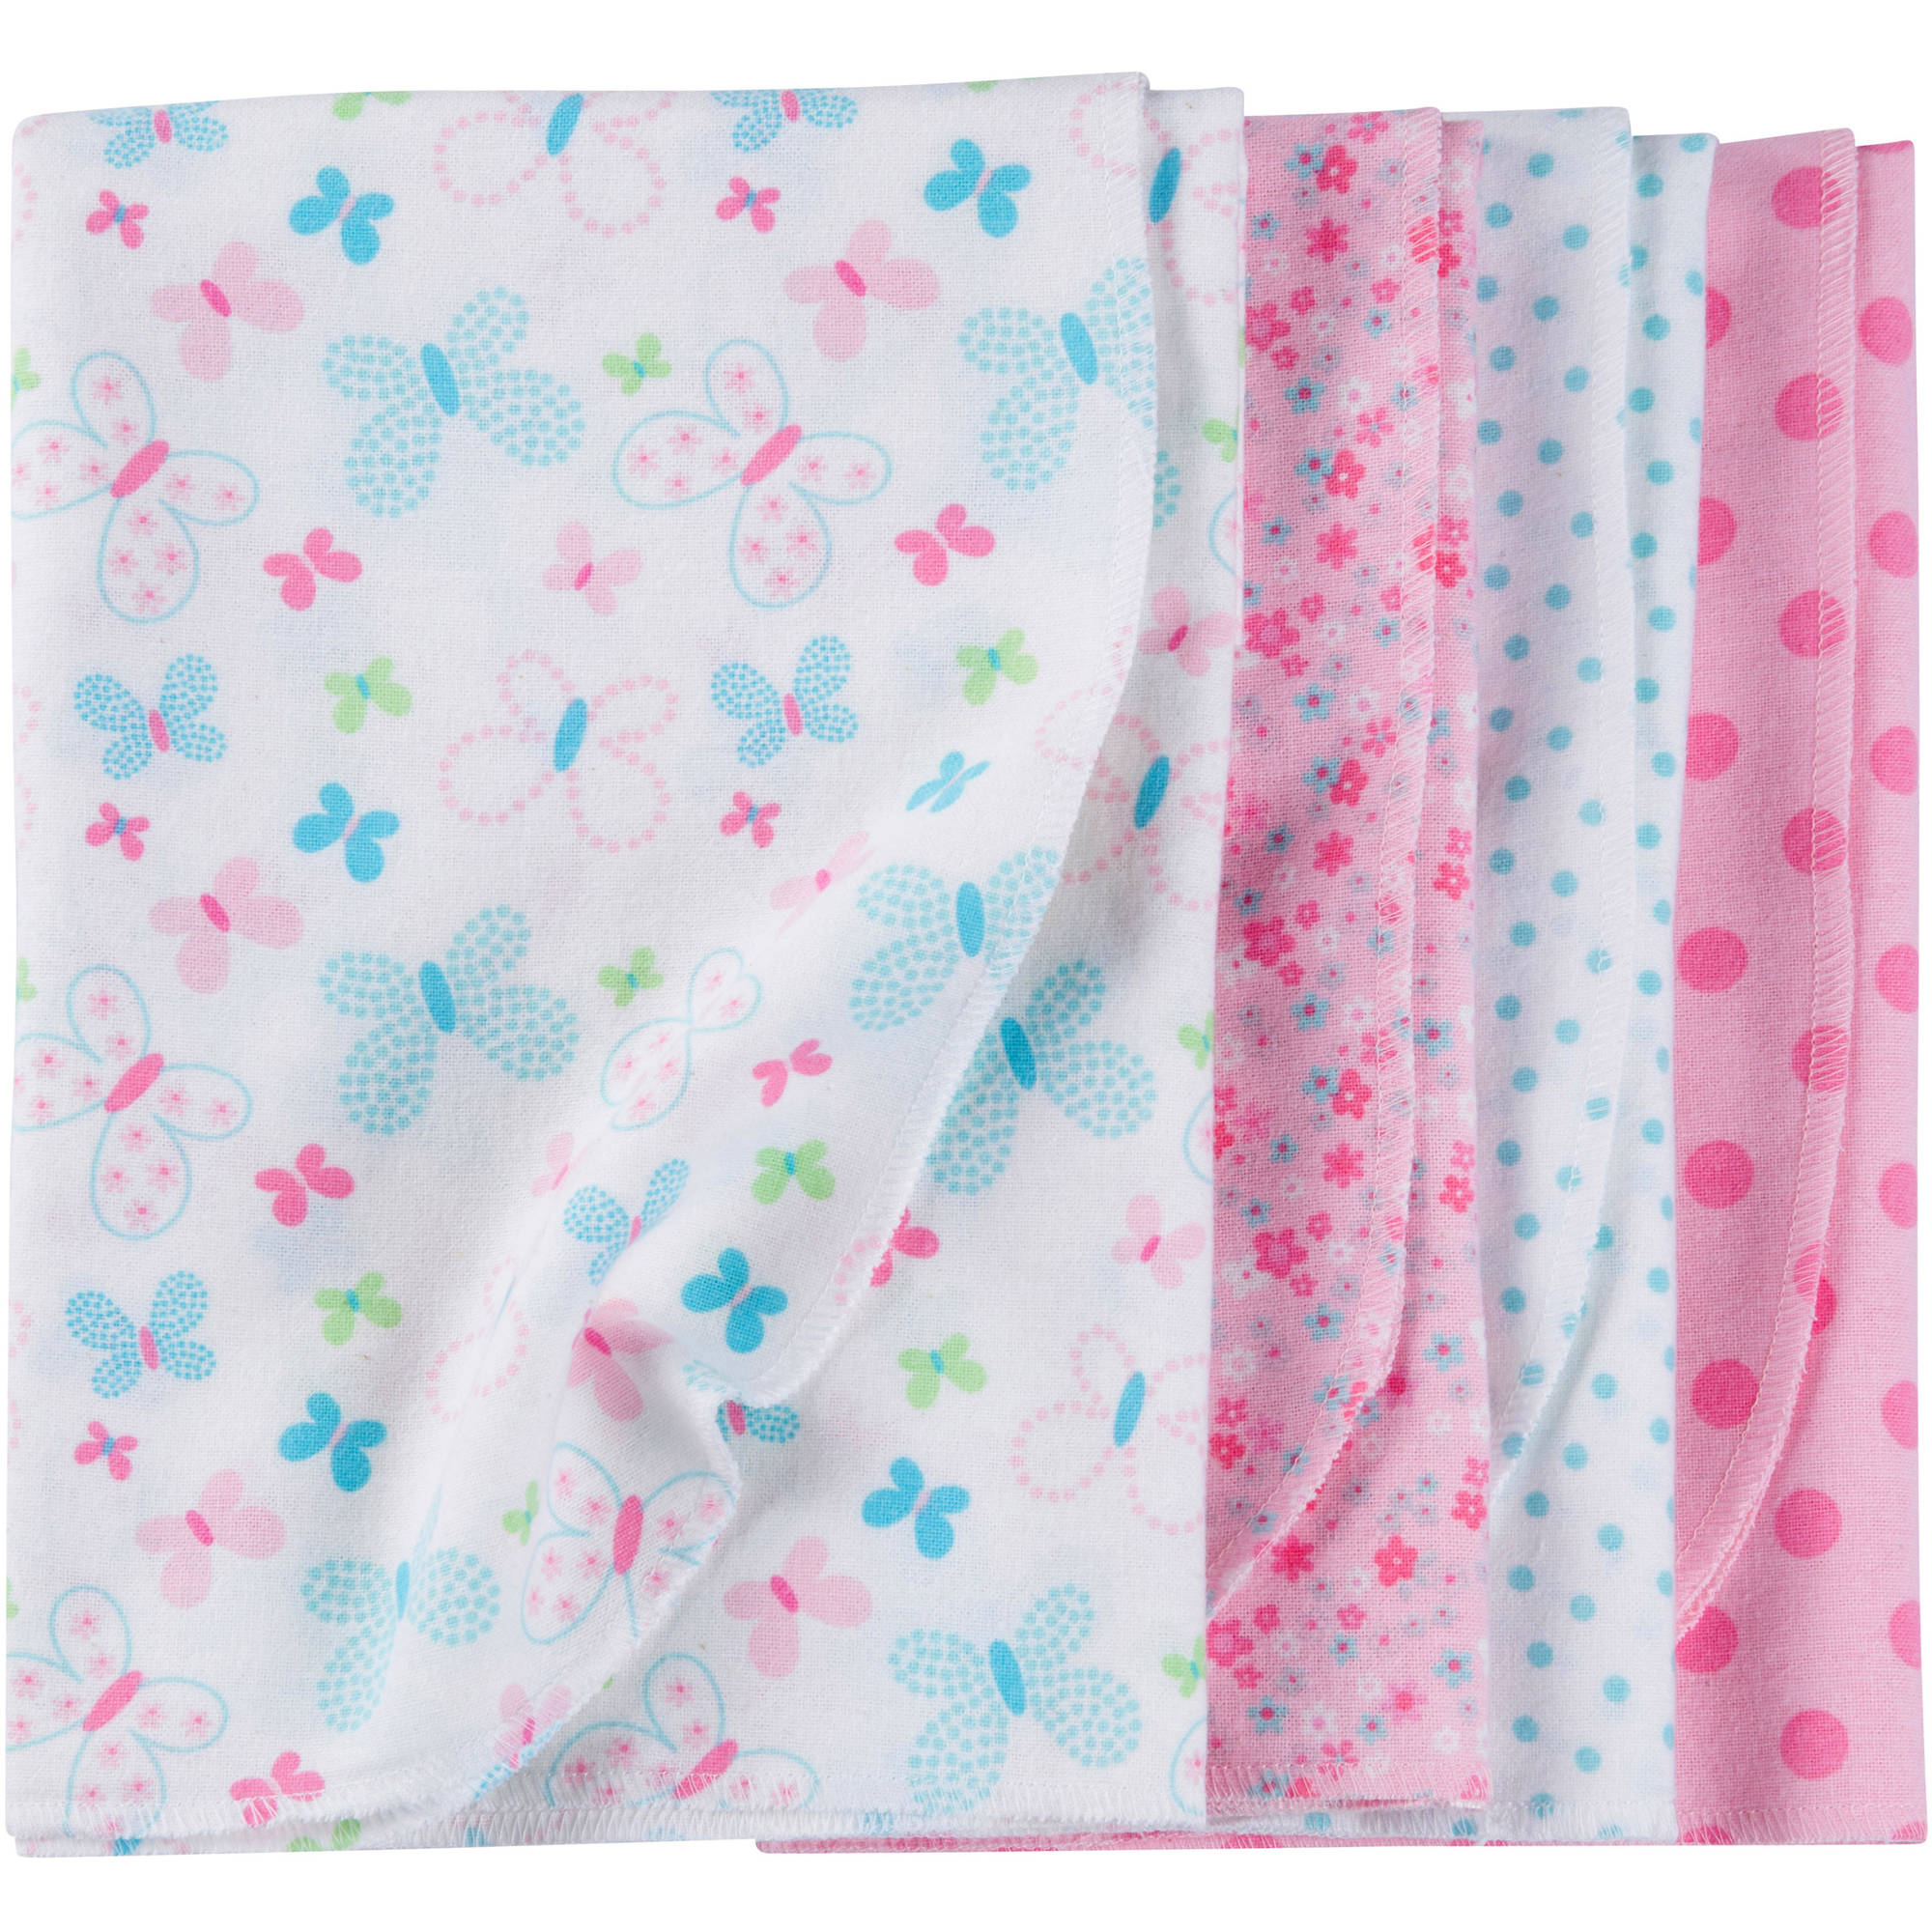 Gerber Newborn Baby Girl Flannel Receiving Blankets, 4-Pack